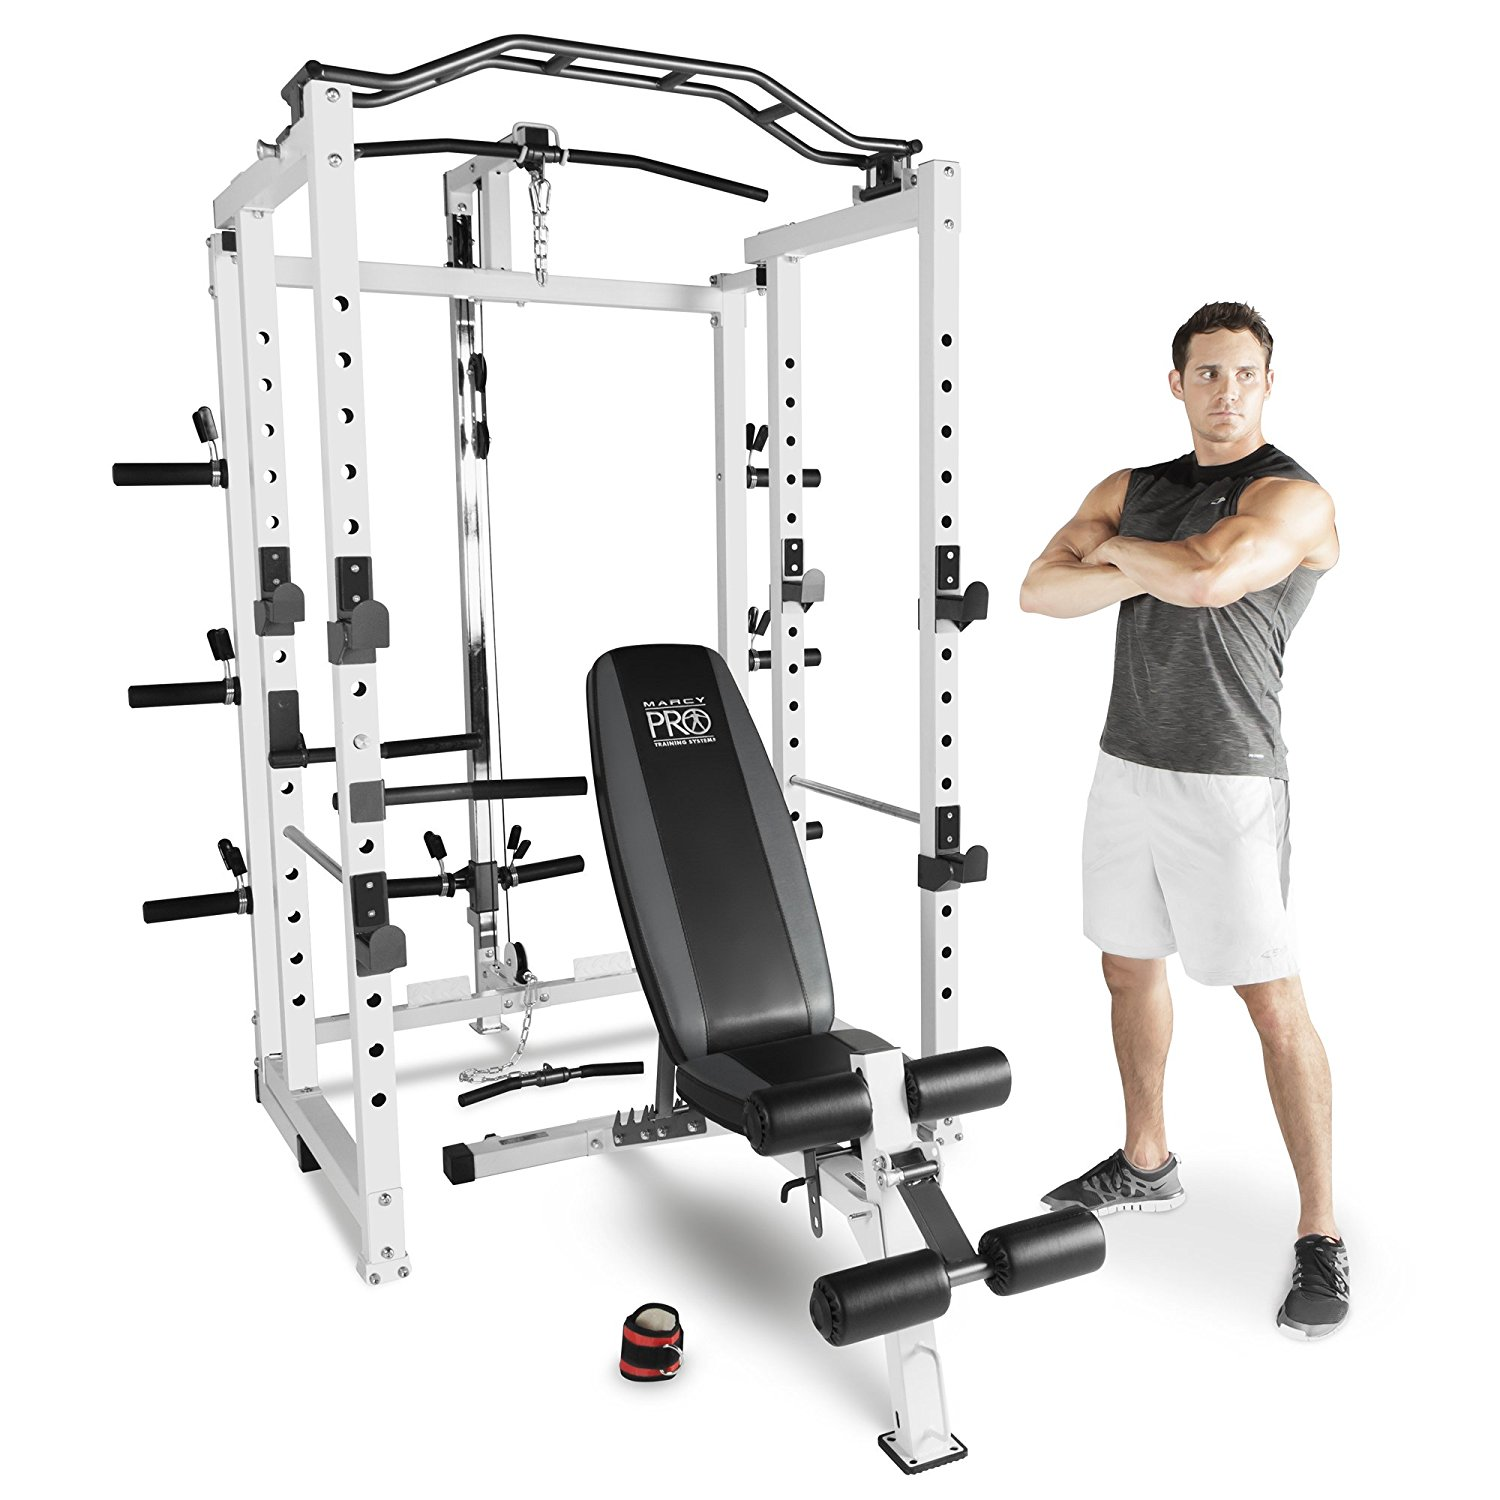 Marcy Pro Deluxe Folding Total Body Home Gym